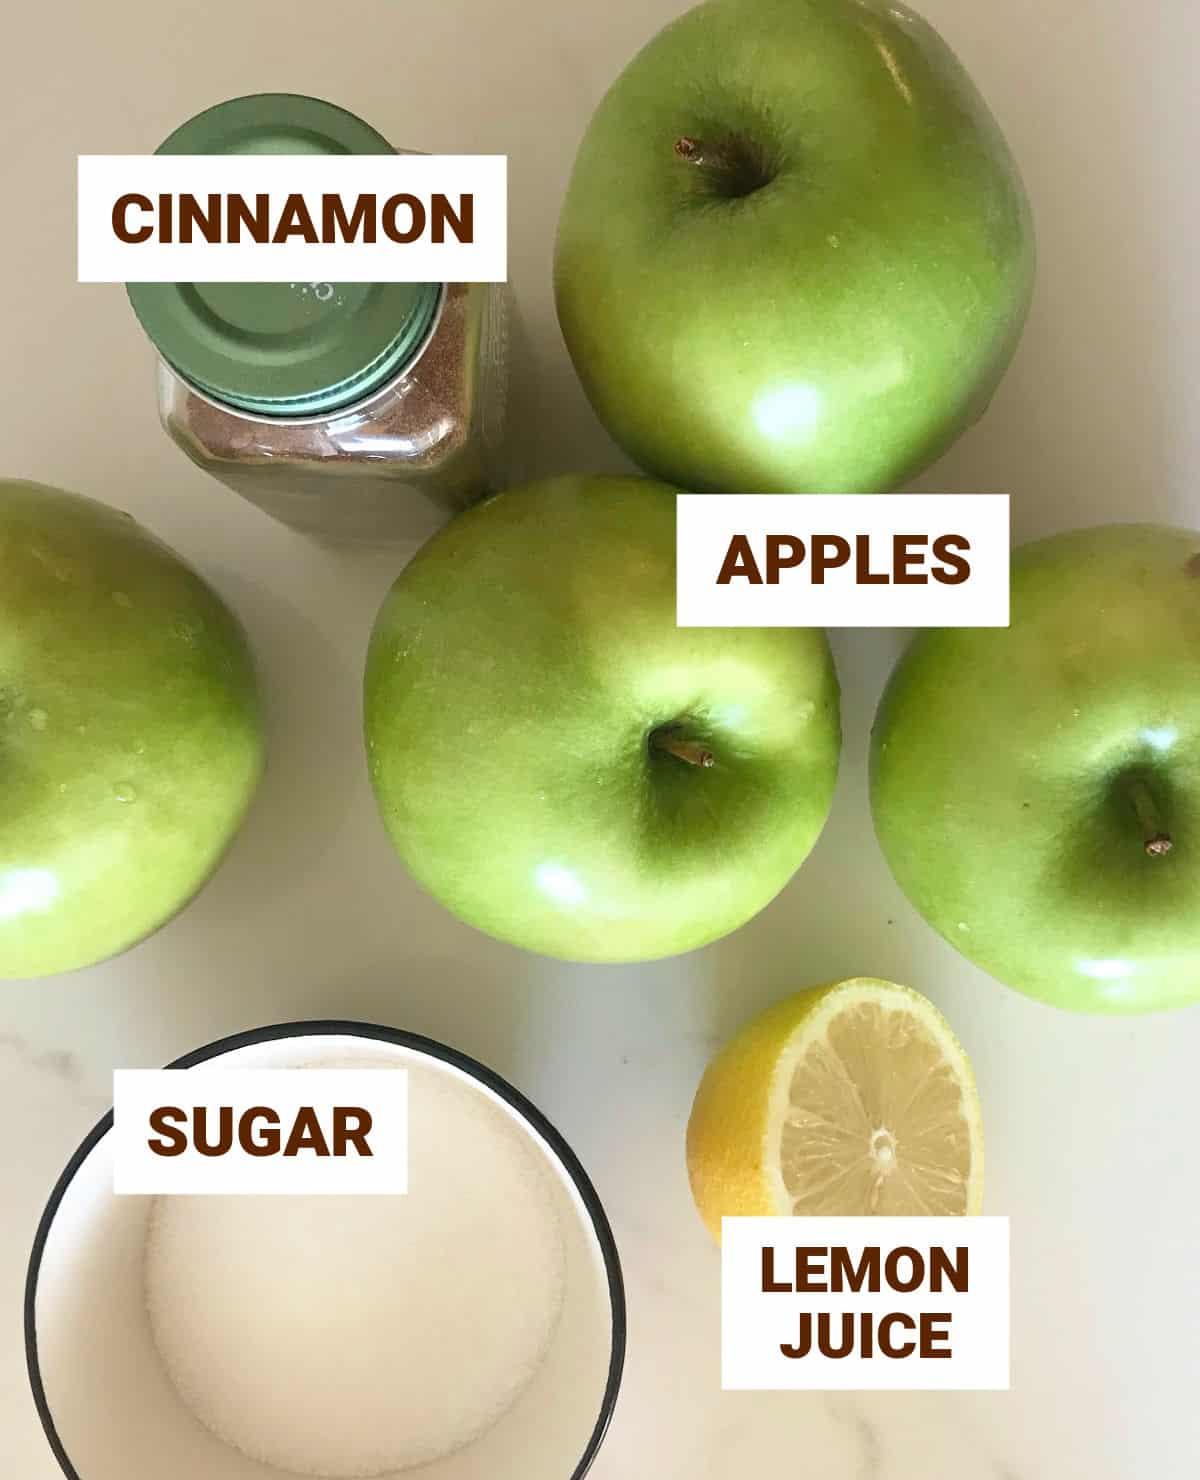 Green apples, half a lemon, and other ingredients ingredients on white surface